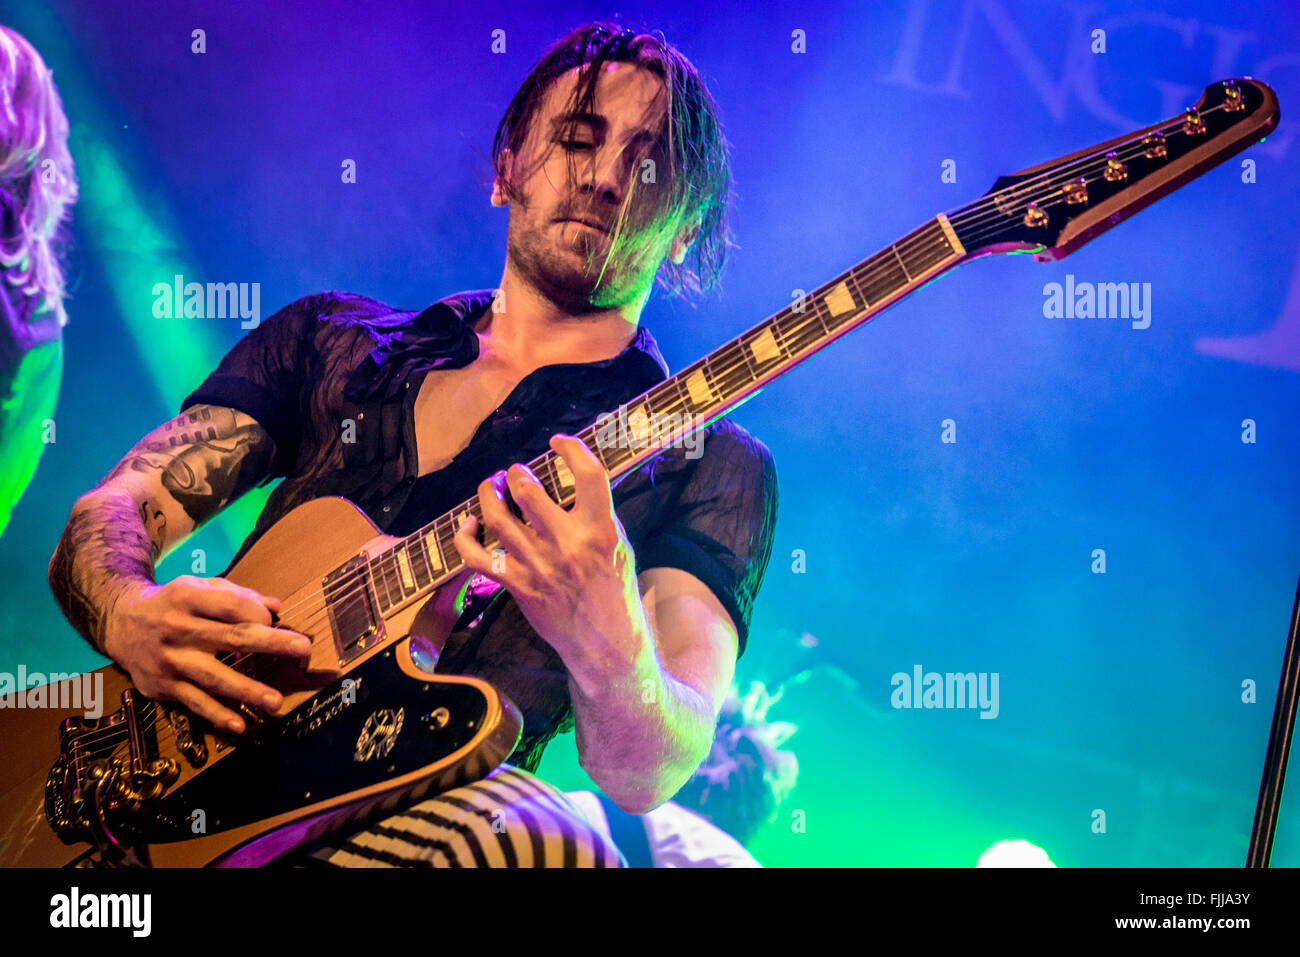 Wil Taylor of Inglorious on guitar - Stock Image